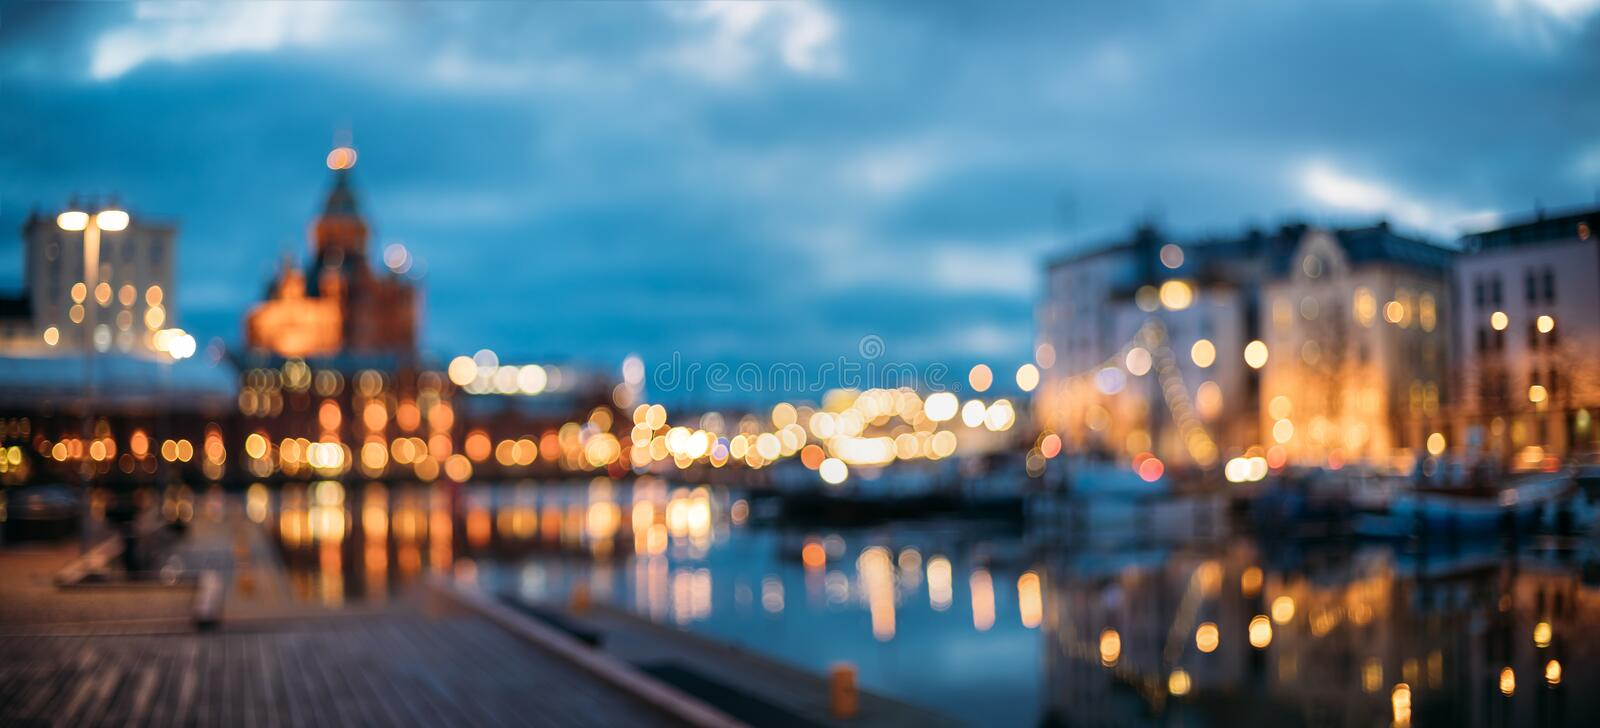 Helsinki, Finland. Abstract Blurred Bokeh Urban Panoramic Background royalty free stock image